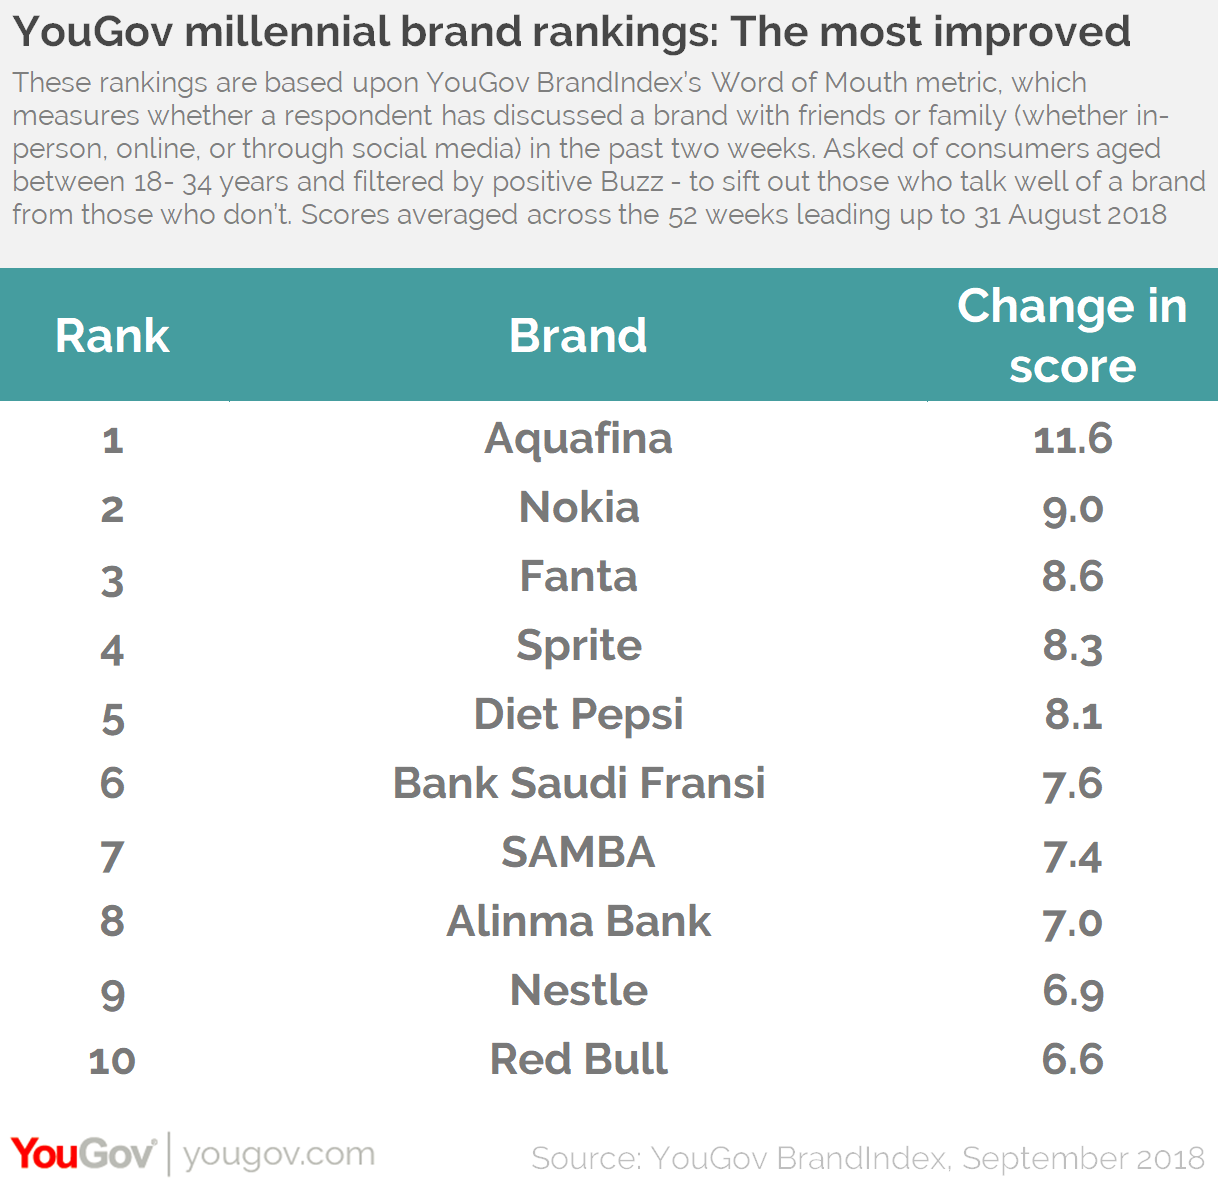 YouGov Millennial Brand Rankings: Top 10 Improvers KSA